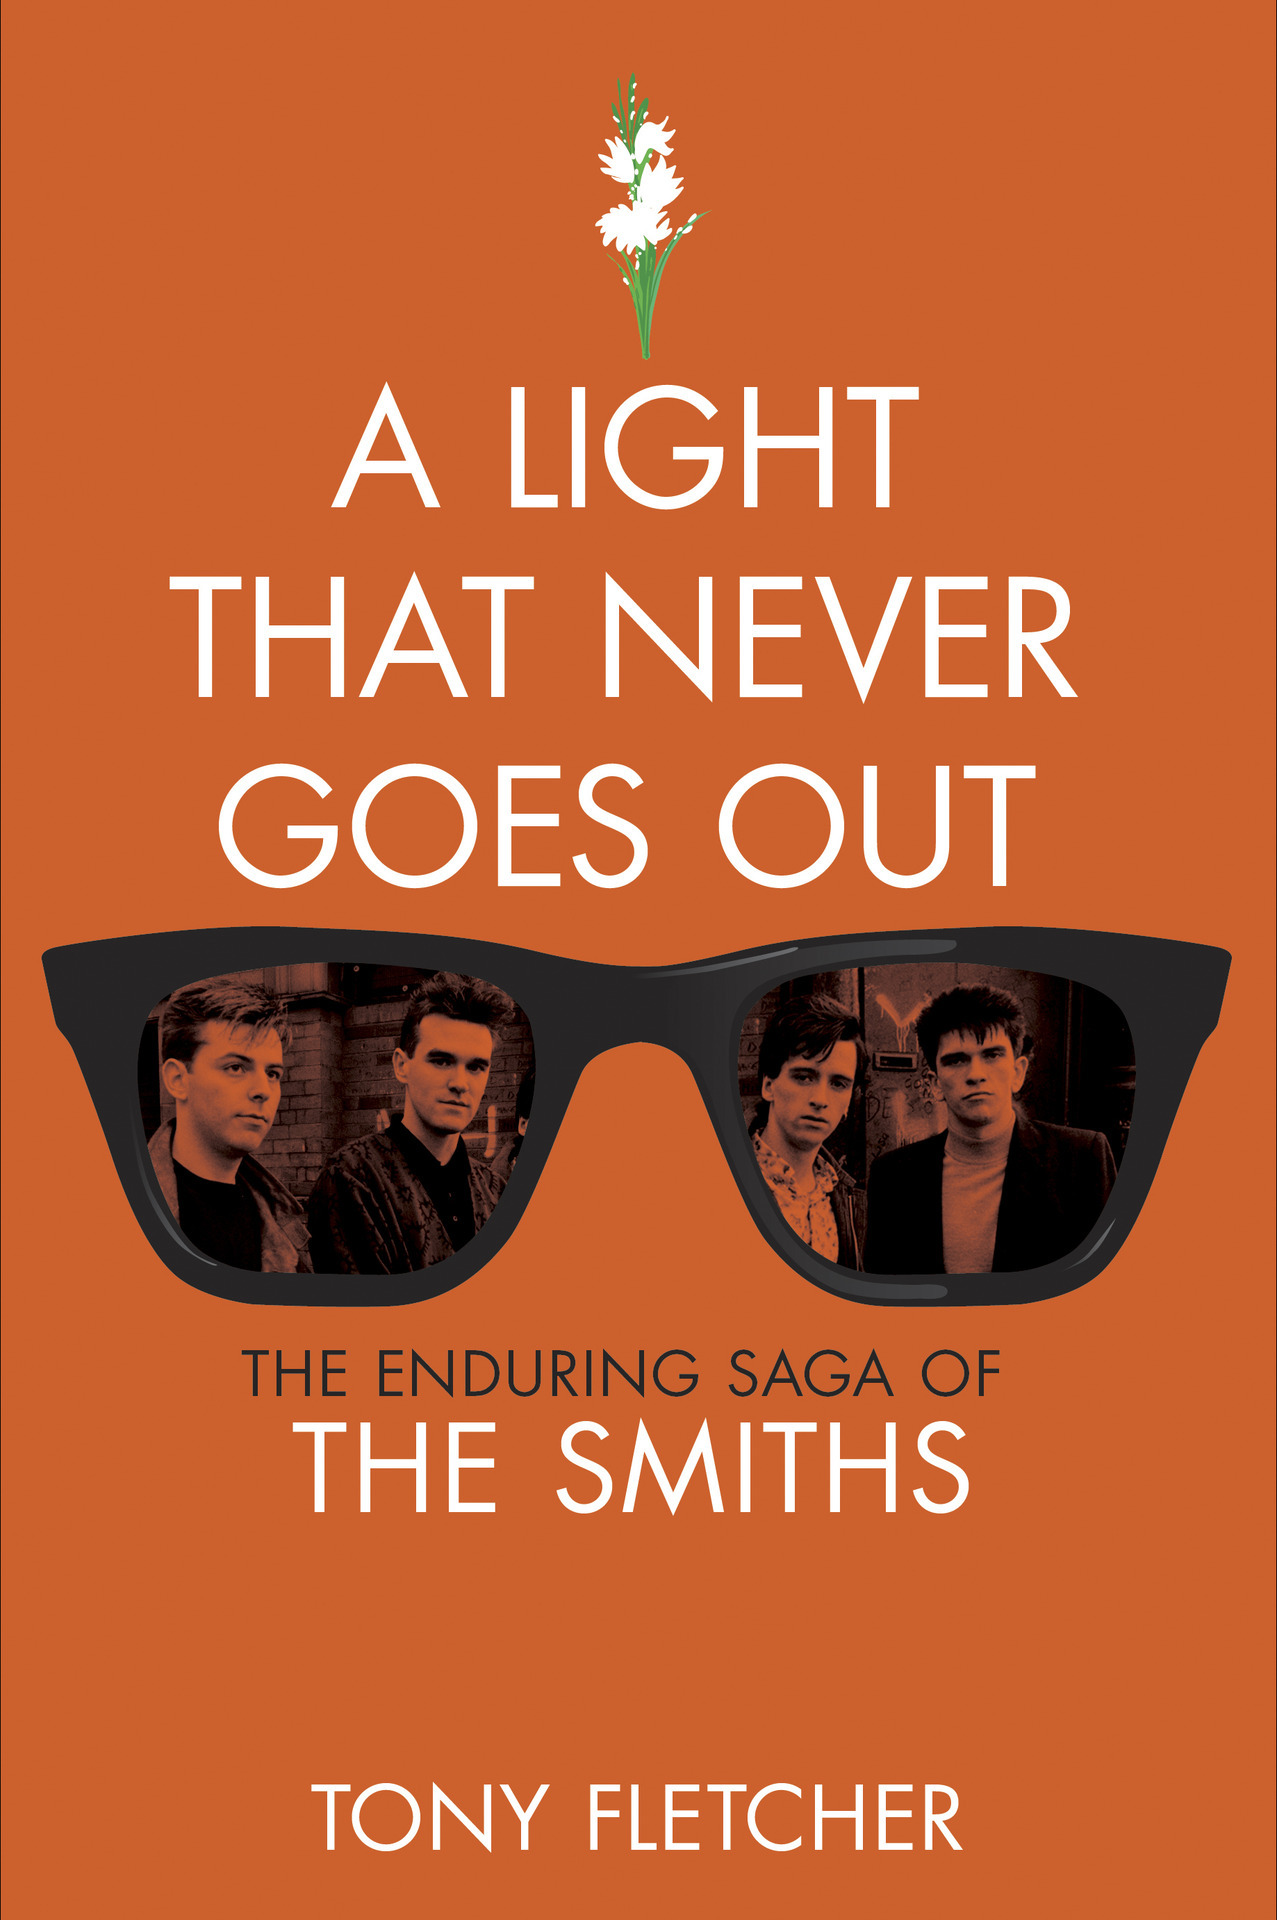 Here's the cover of the U.S. edition of new The Smiths biography 'A Light That Never Goes Out,' which is out now in the U.K. but won't be published here until December | DETAILS